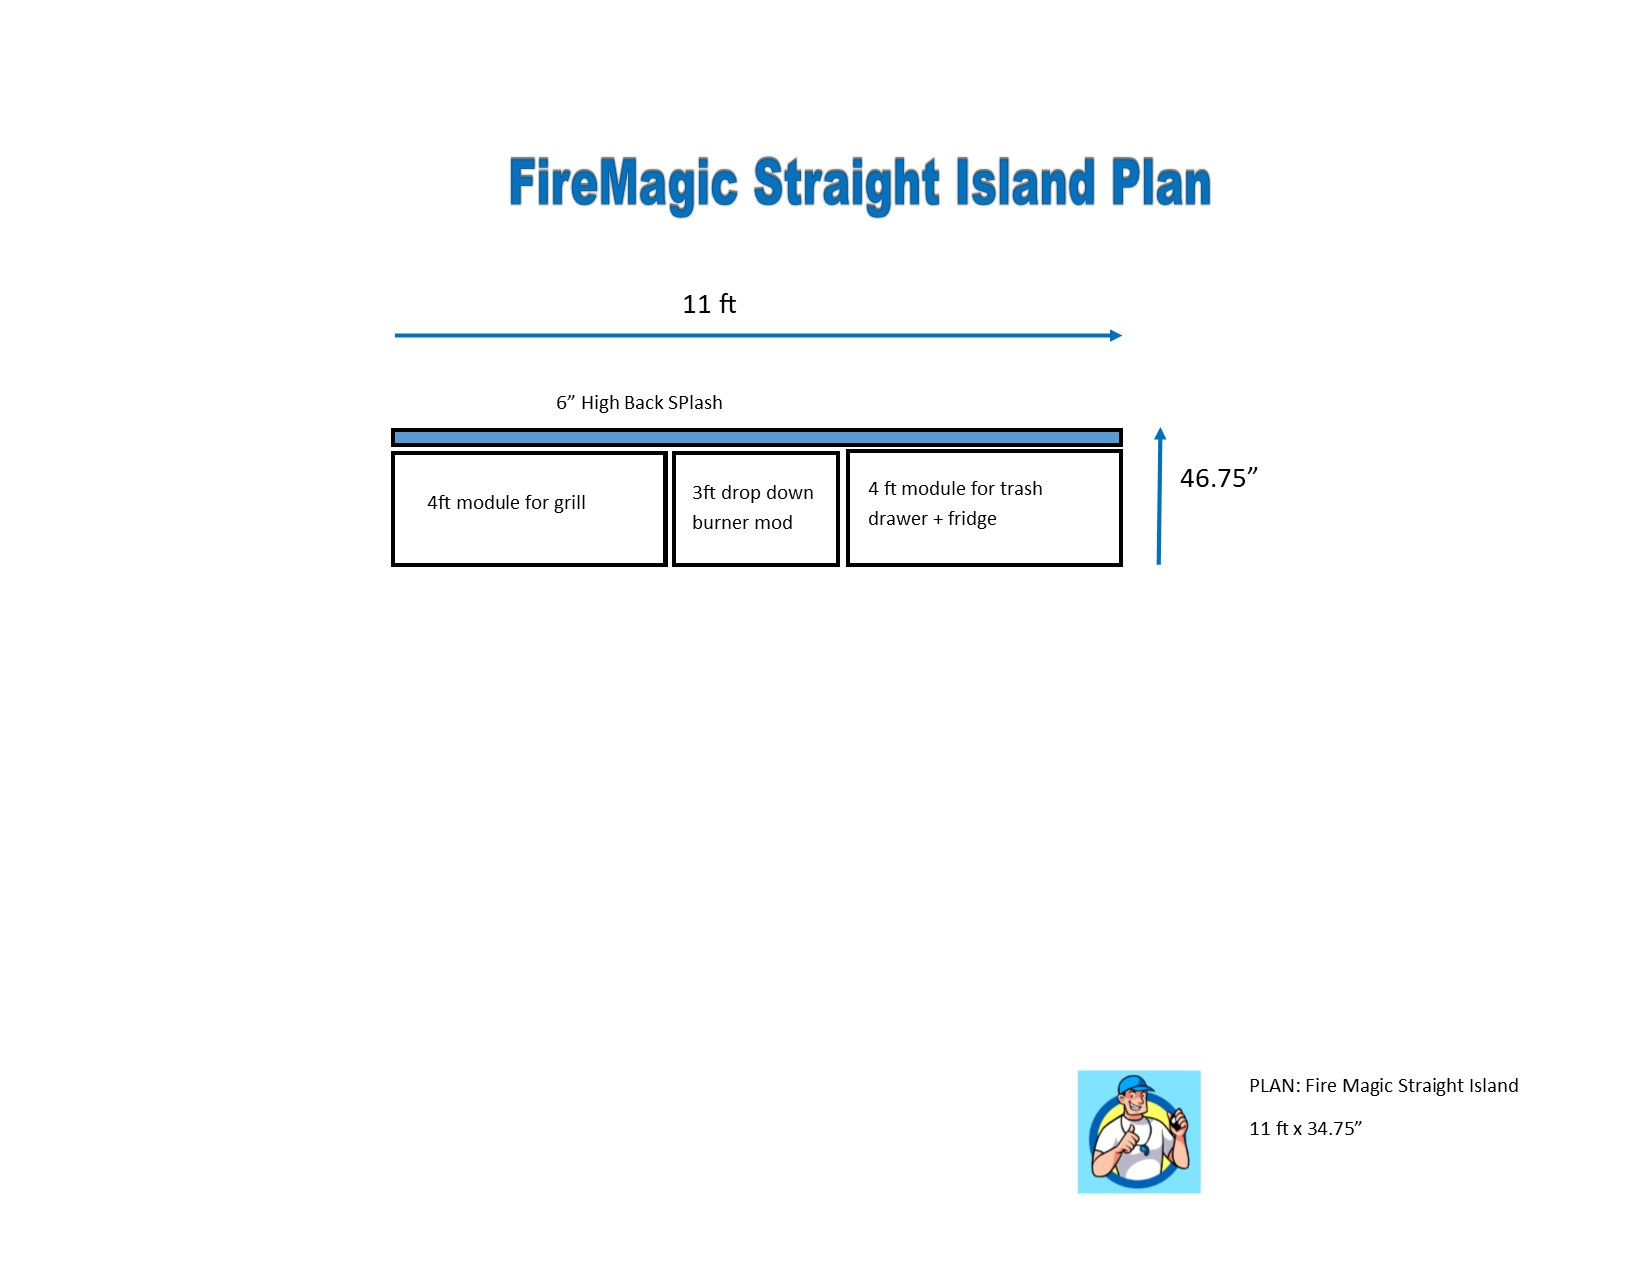 fire-magic-straight-island-plan.jpg